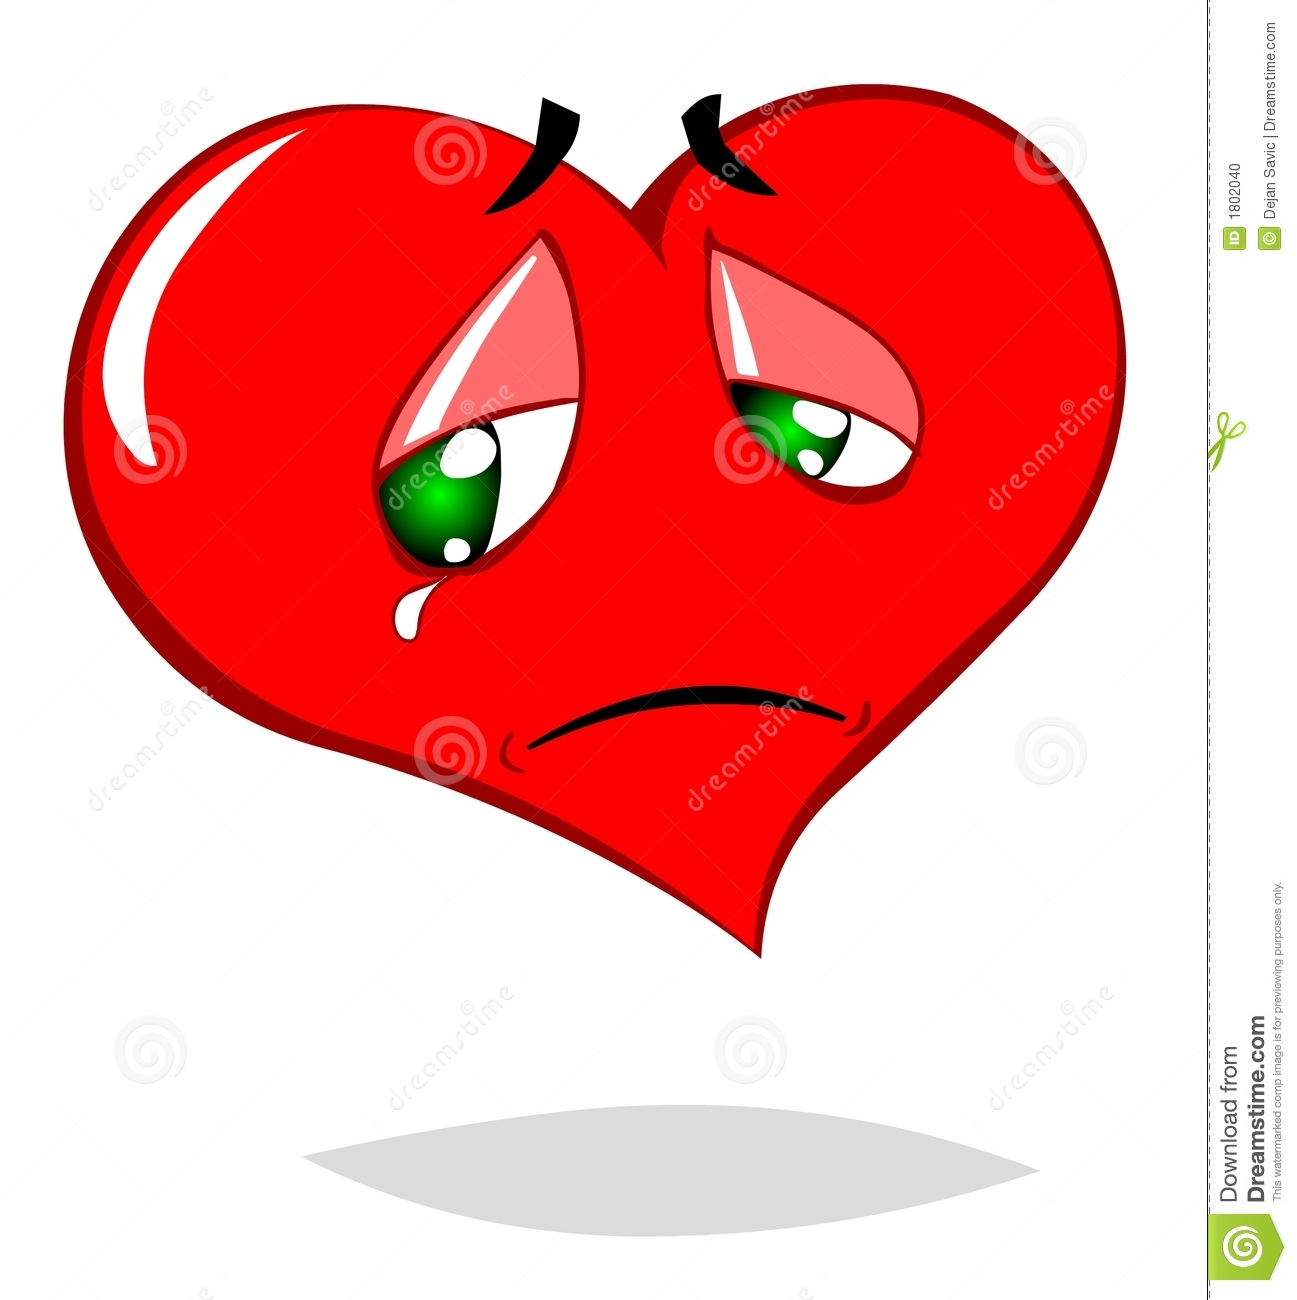 Sad Heart Stock Photo - Image: 1802040